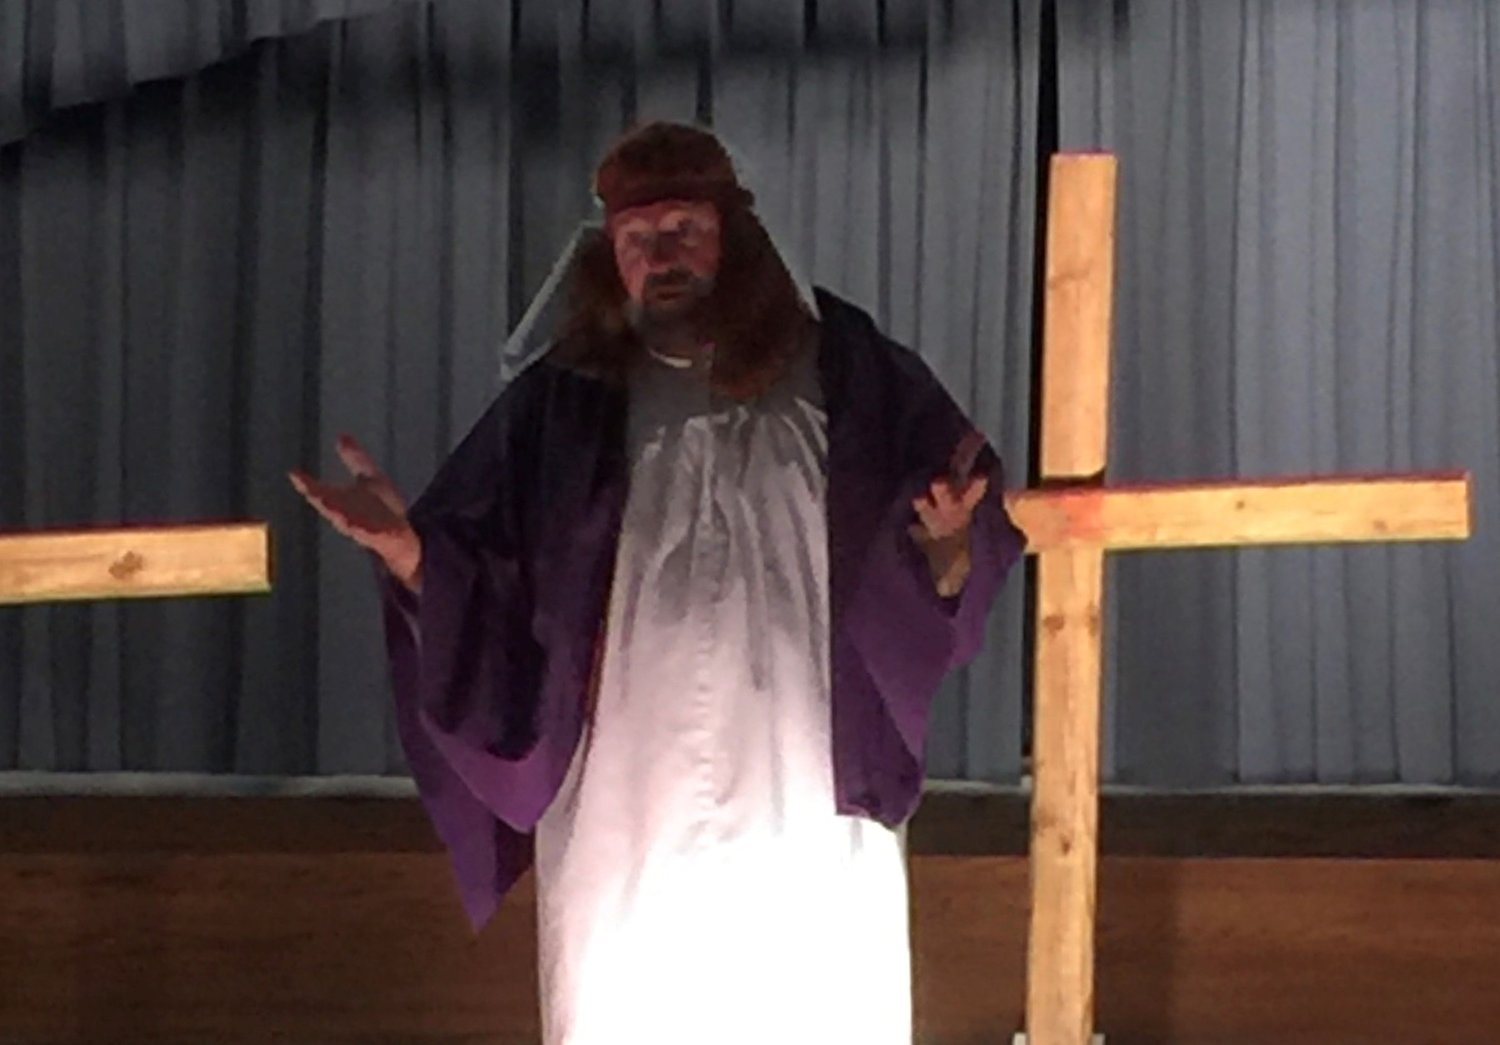 Jim Forrest, the pastor of Danleyton Baptist Church in rural Greenup County, portrays Jesus in a play that he wrote. The first production was 40 years ago, in 1979. The church has done it every year since 2007. (Submitted photo)